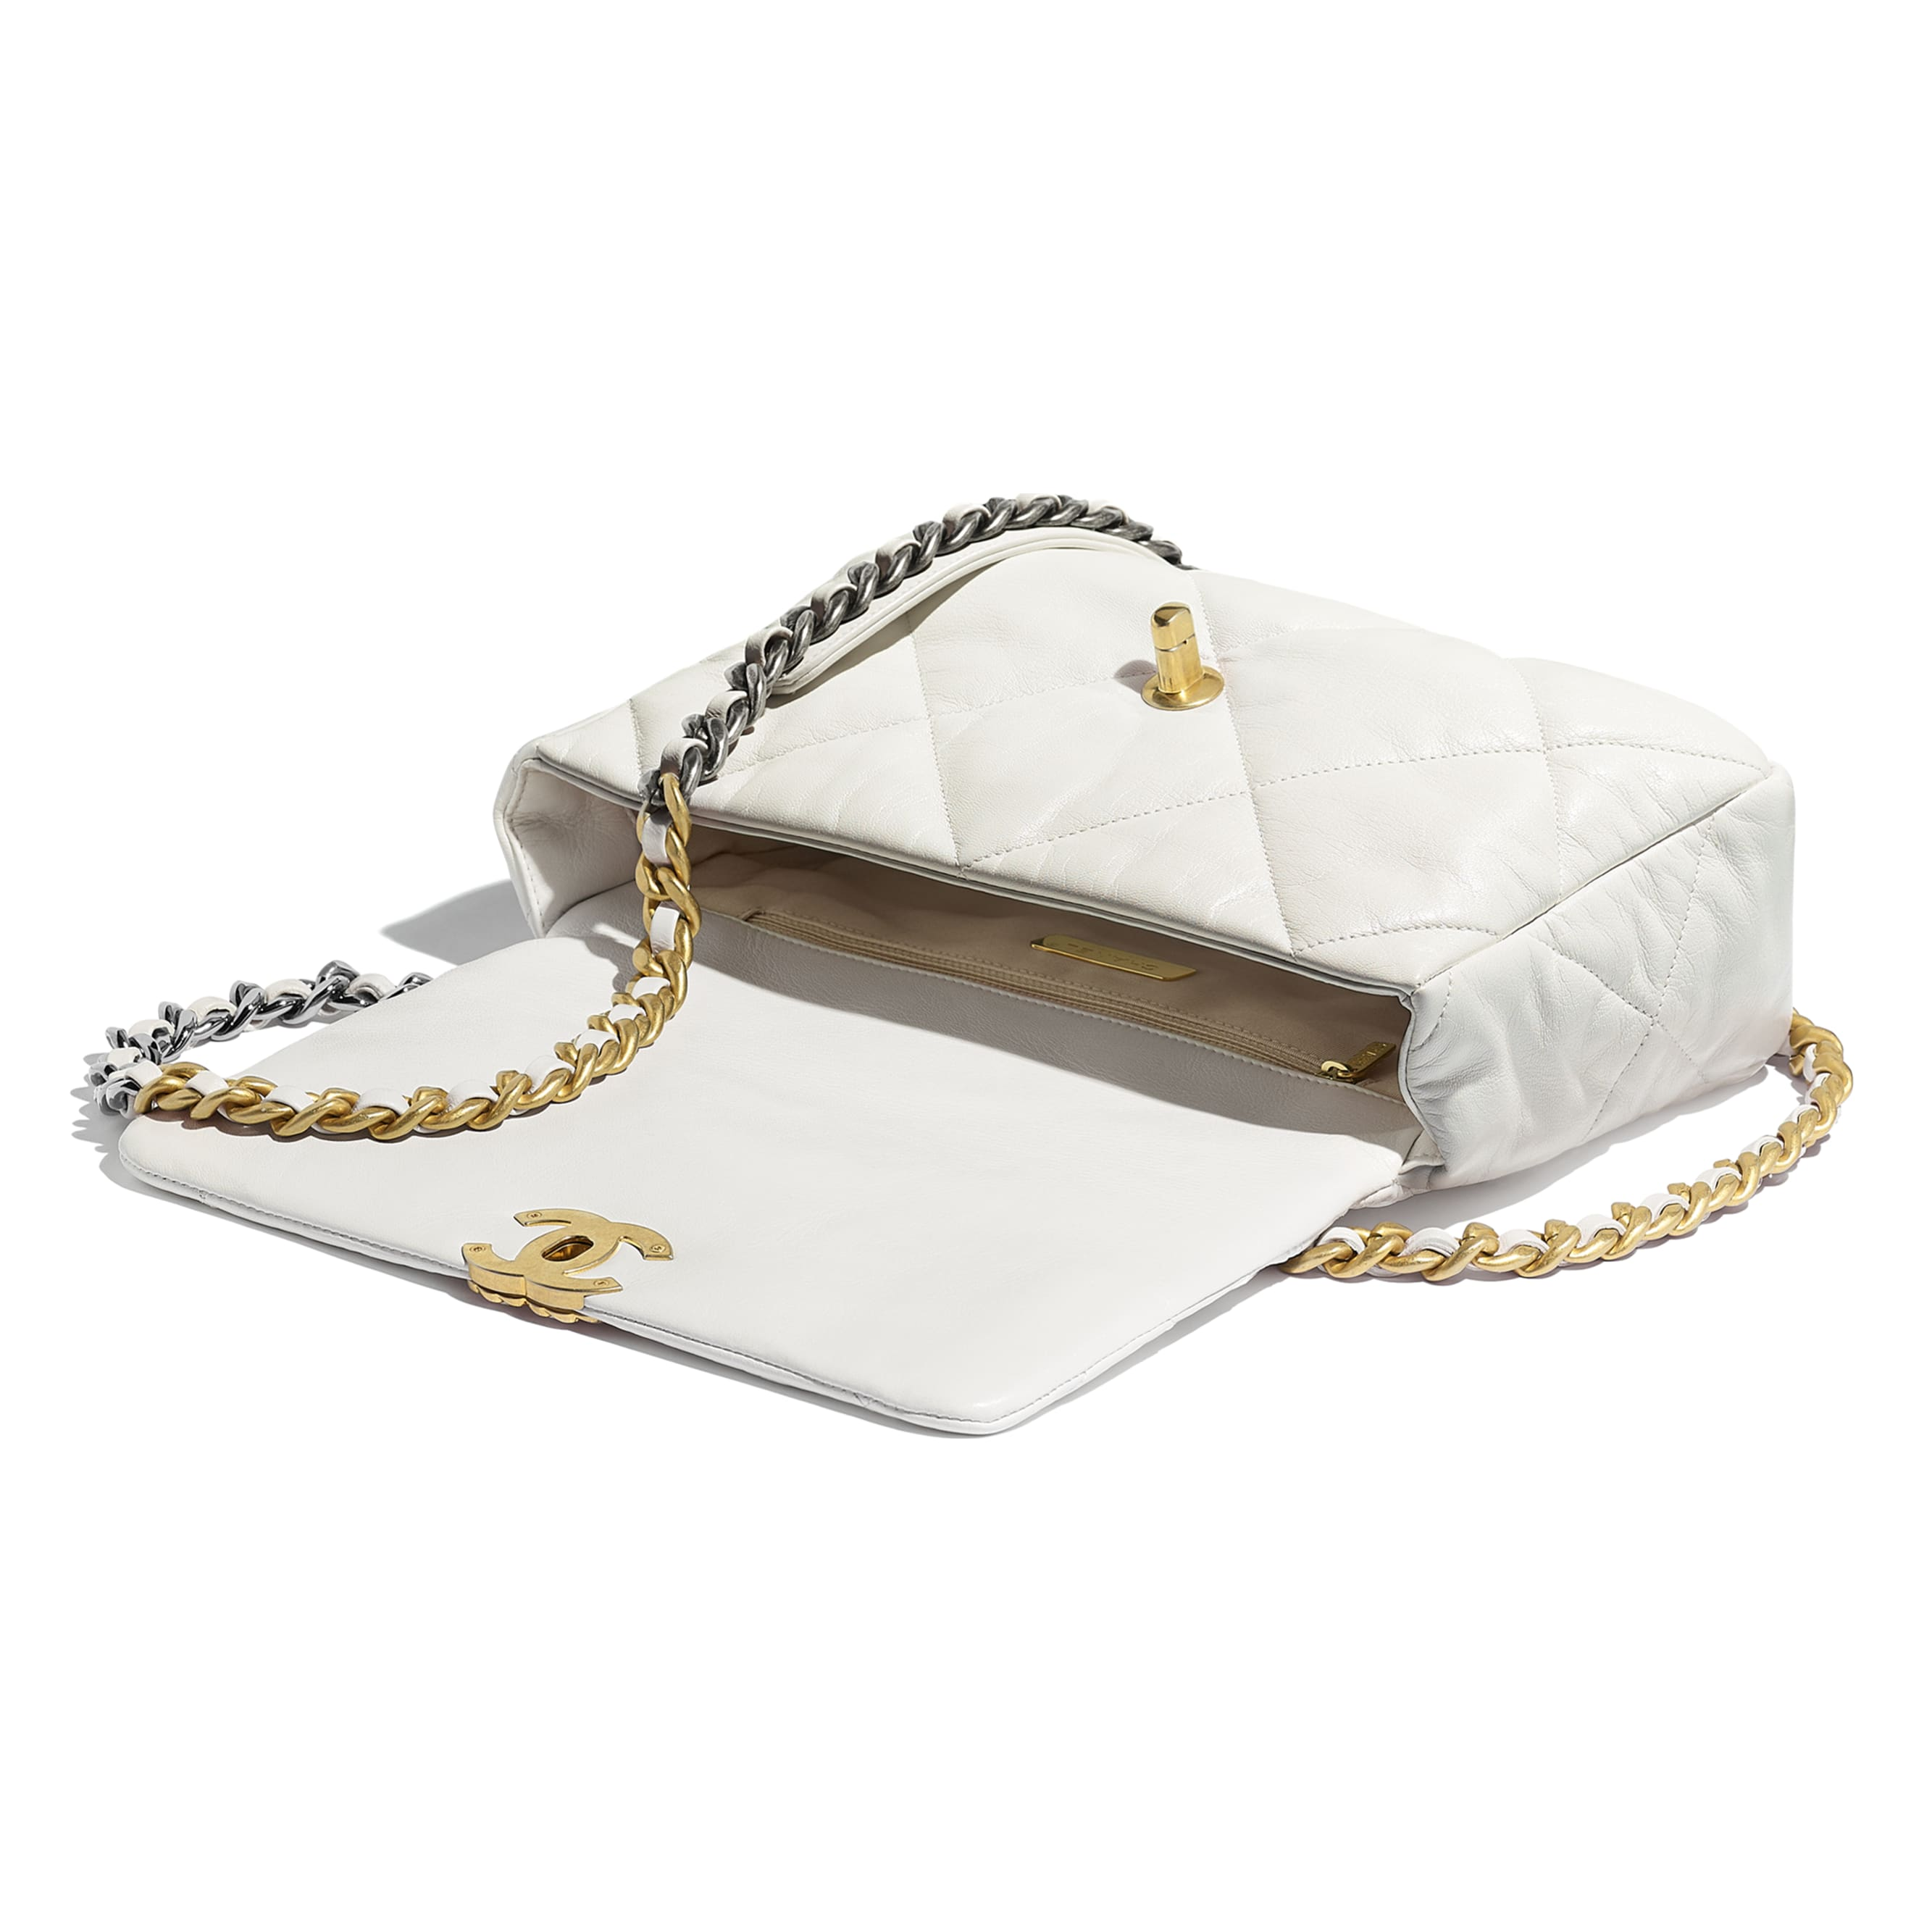 CHANEL 19 Large Flap Bag - White - Goatskin, Gold-Tone, Silver-Tone & Ruthenium-Finish Metal - Other view - see standard sized version